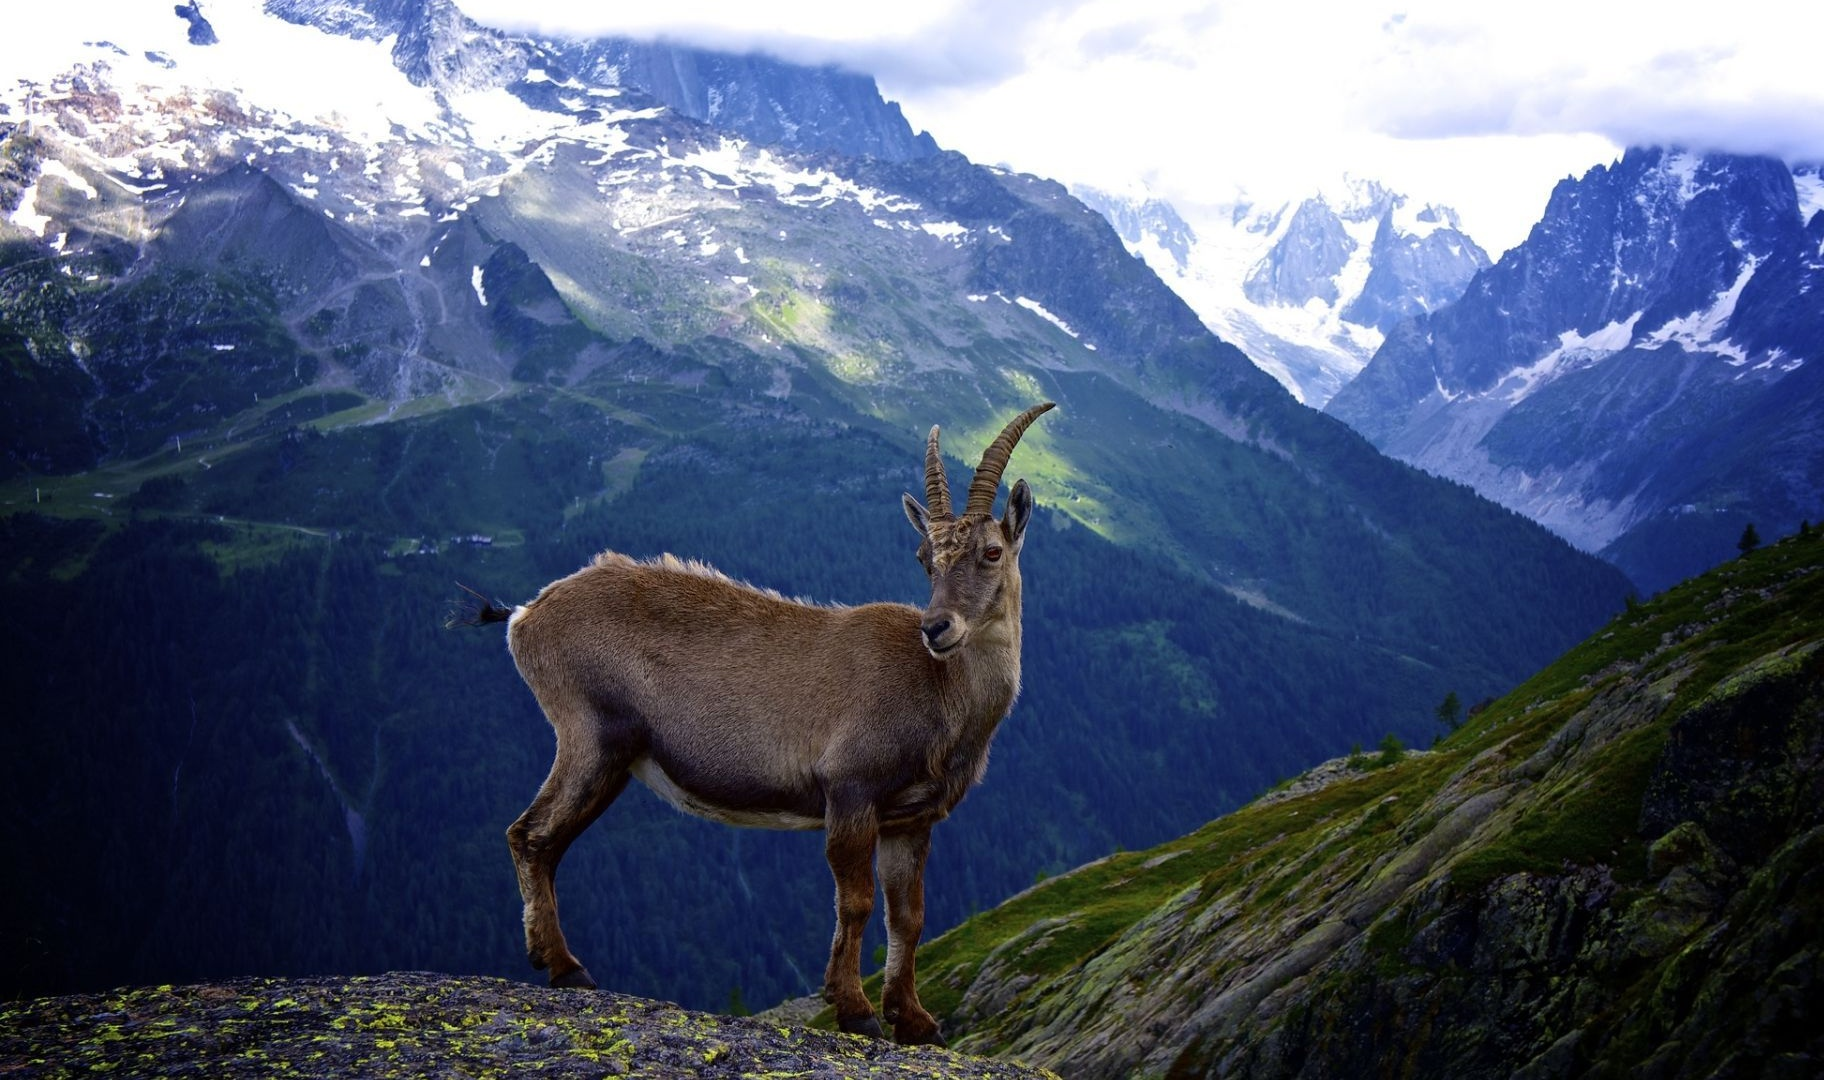 fav 0 rate 0 tweet 1920x1200 animals mountain mountain goat goat ...